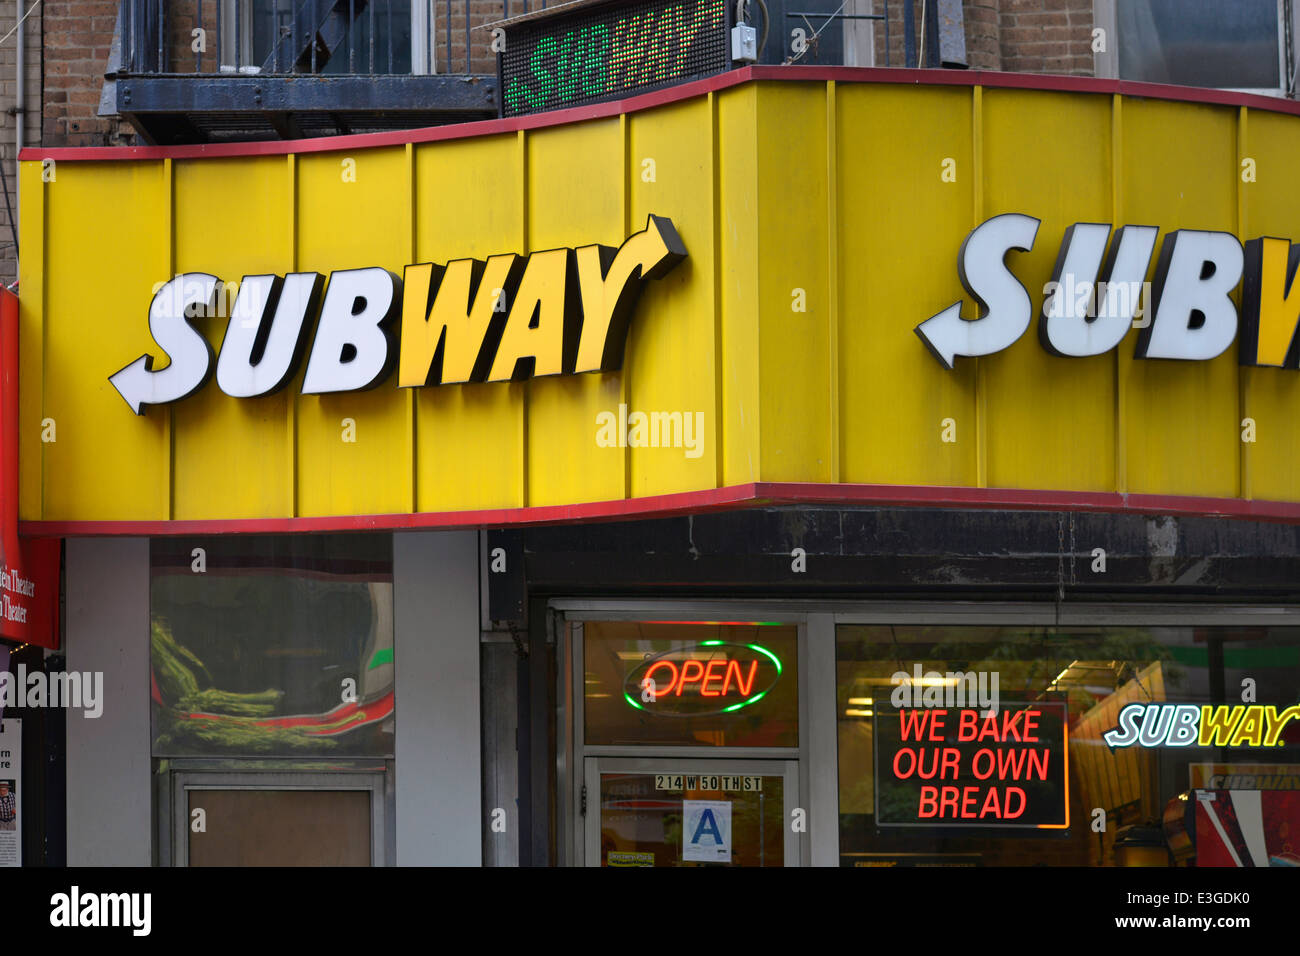 Subway Sandwiches Restaurant Sign above Entrance - Stock Image